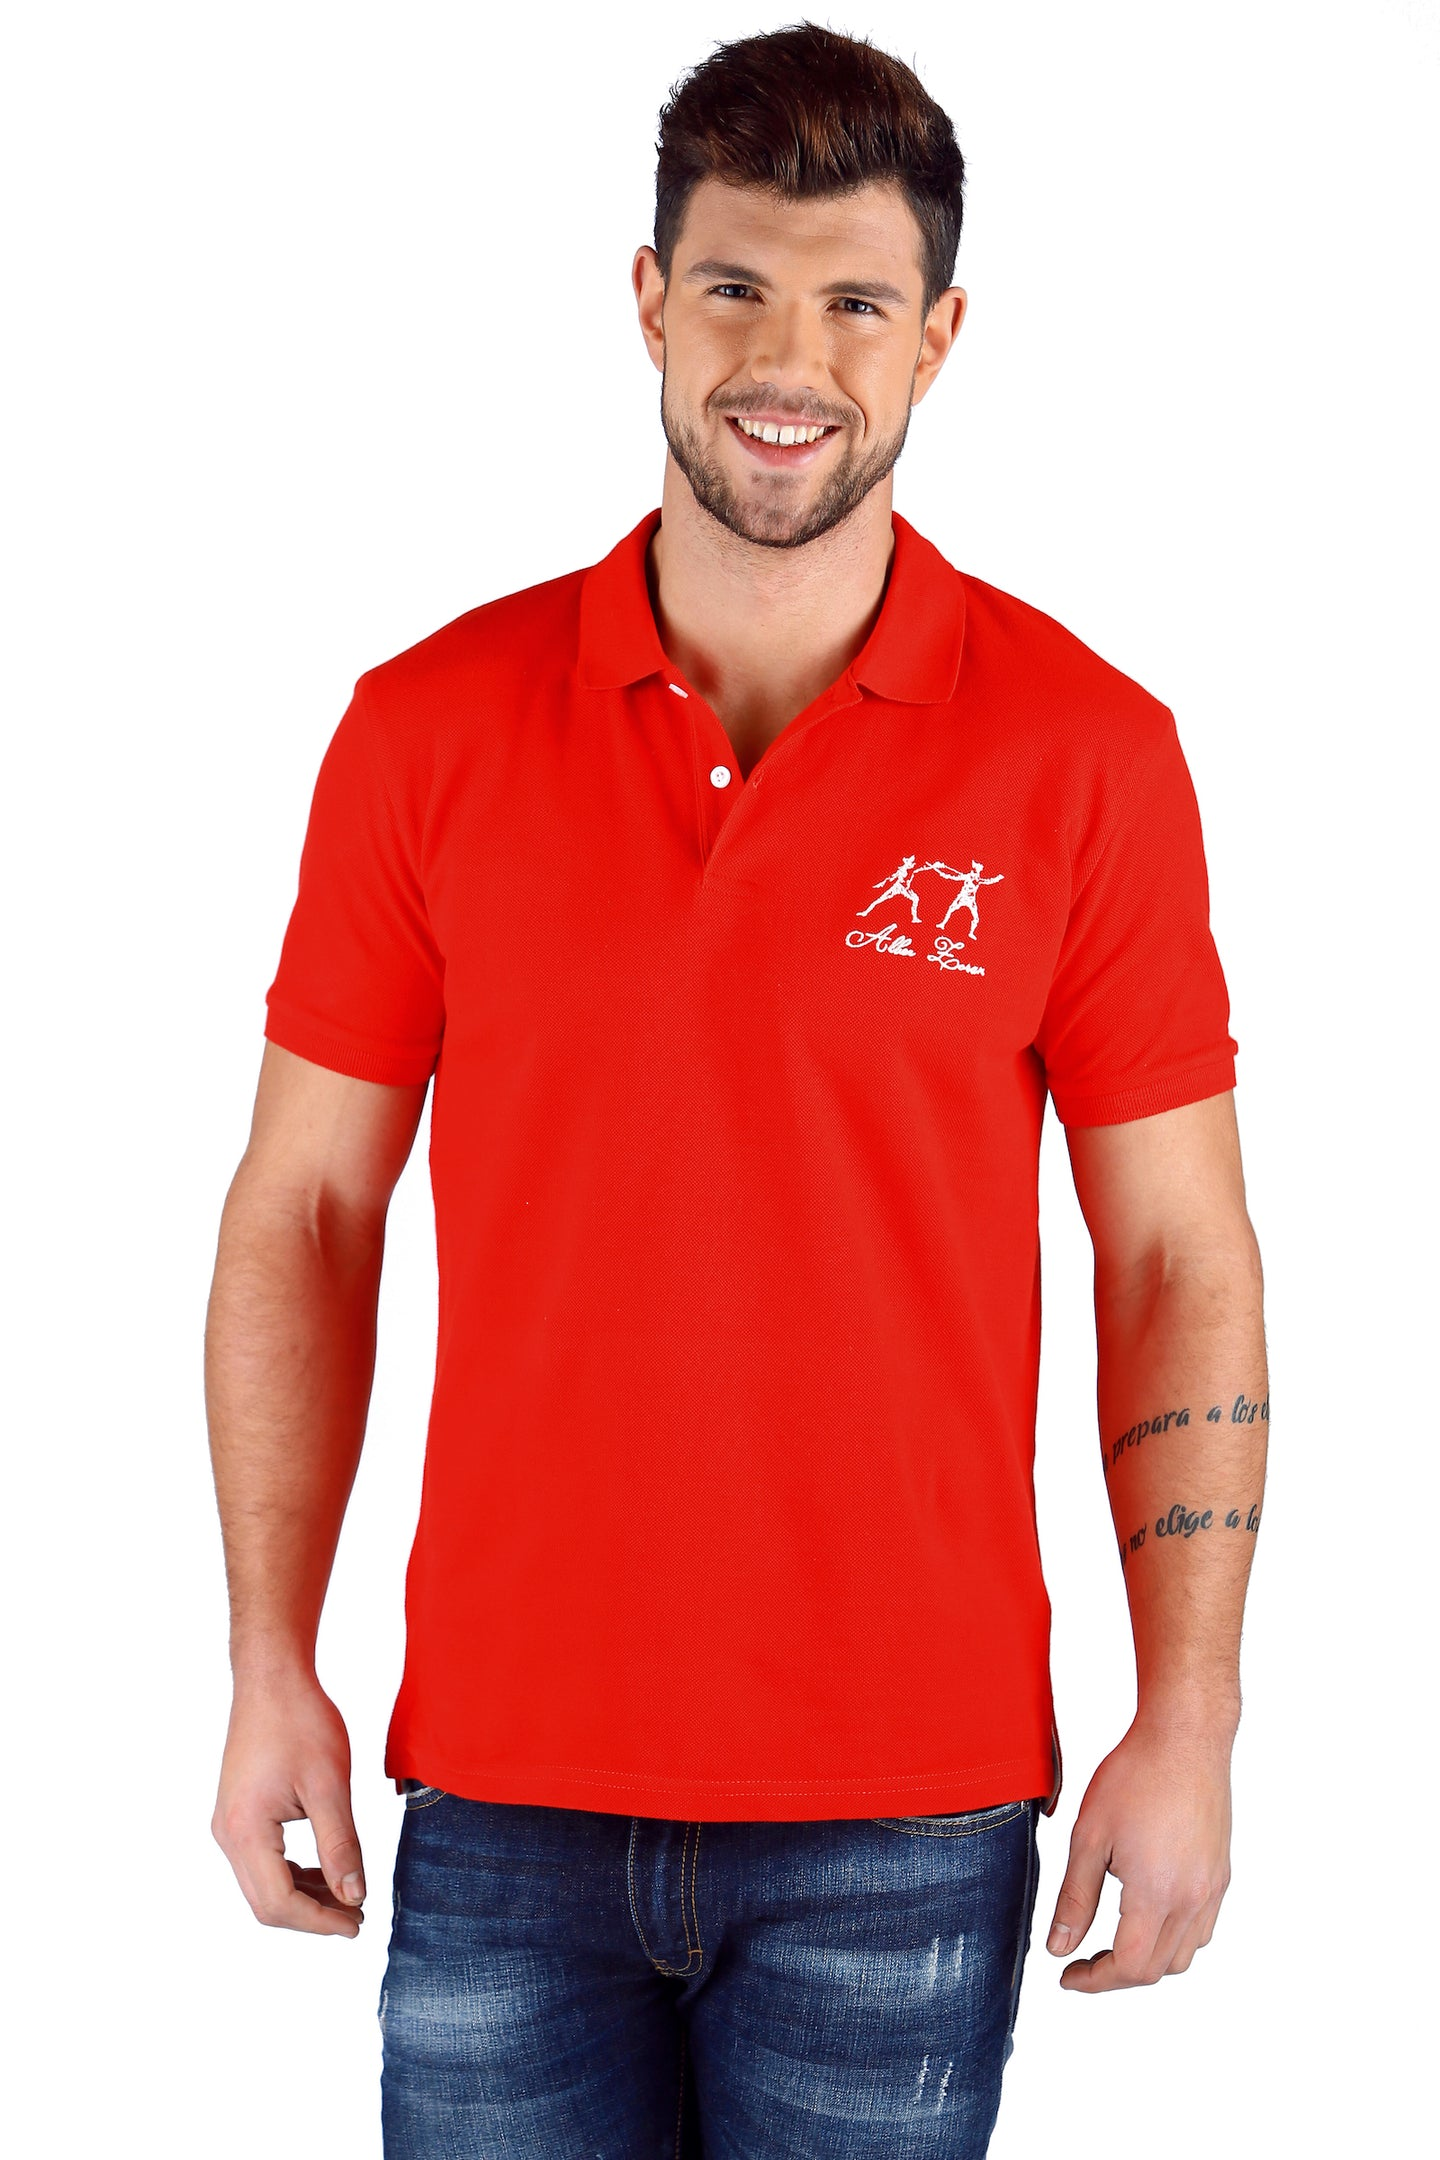 ICONIC FENCING POLO Red 2 Fencers